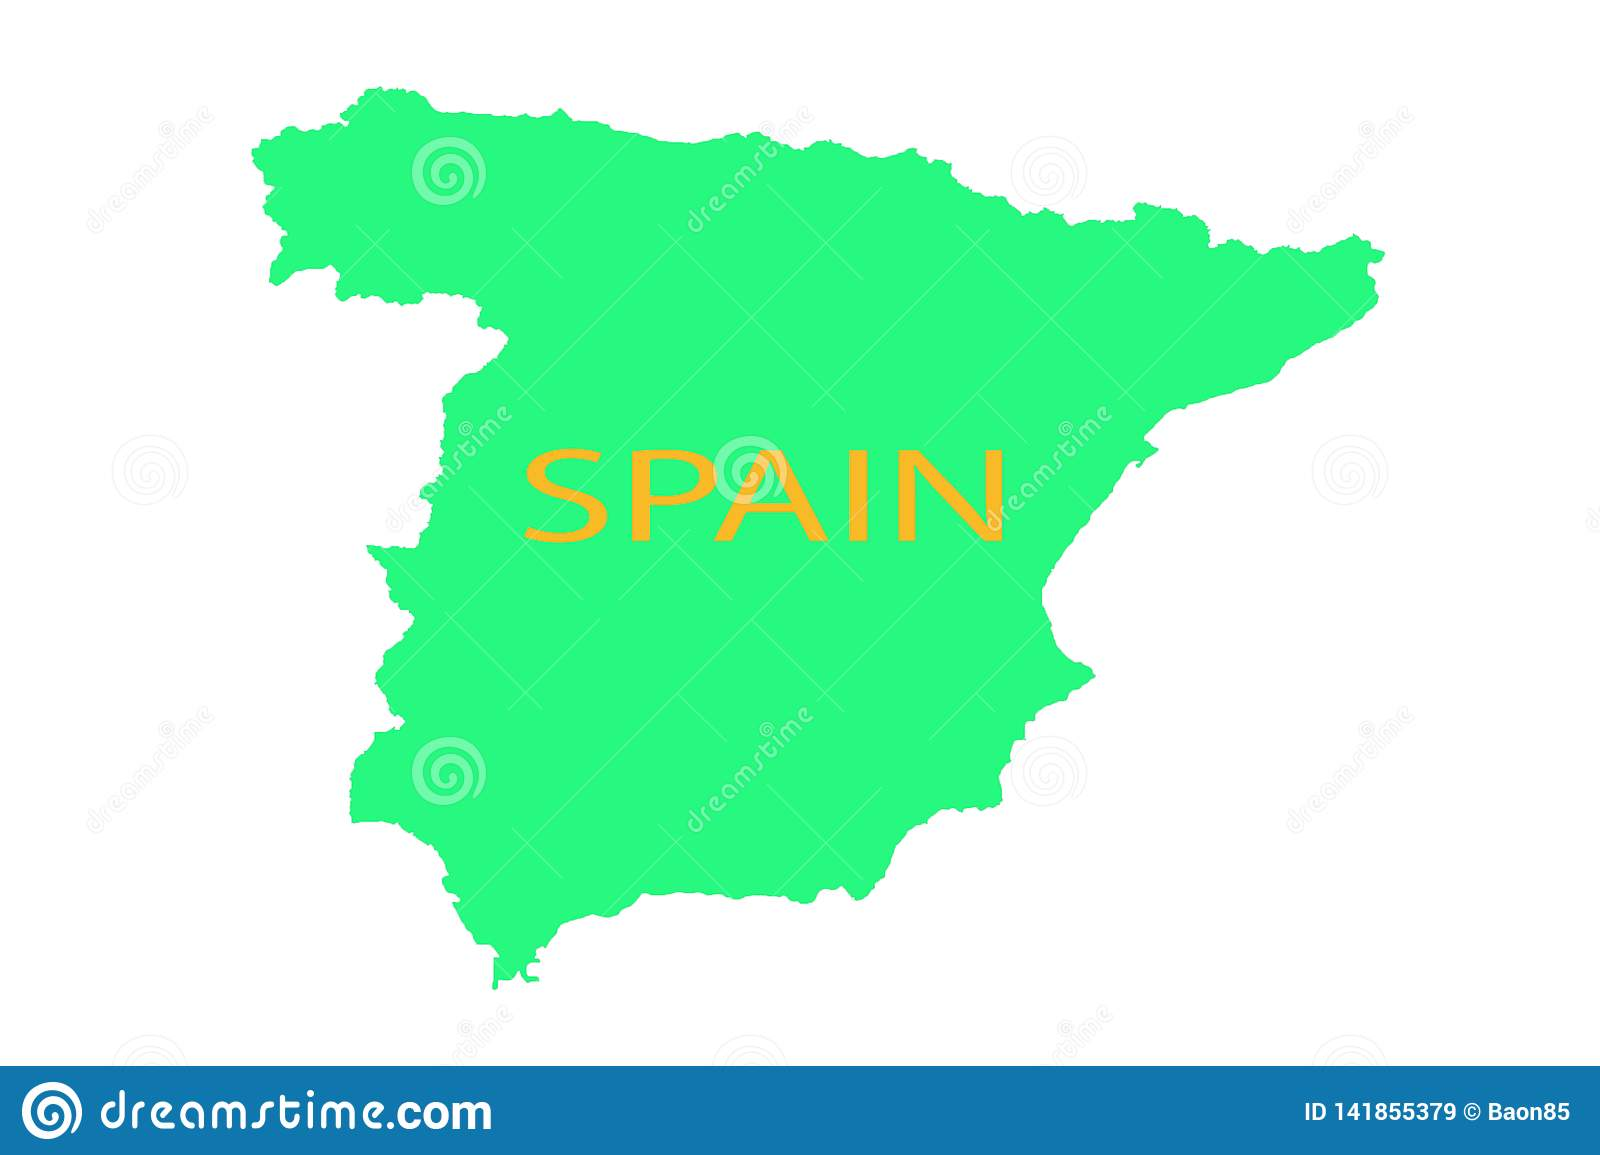 Spain On A Map Spain On The Map United Vision World Yellow Stock Illustration